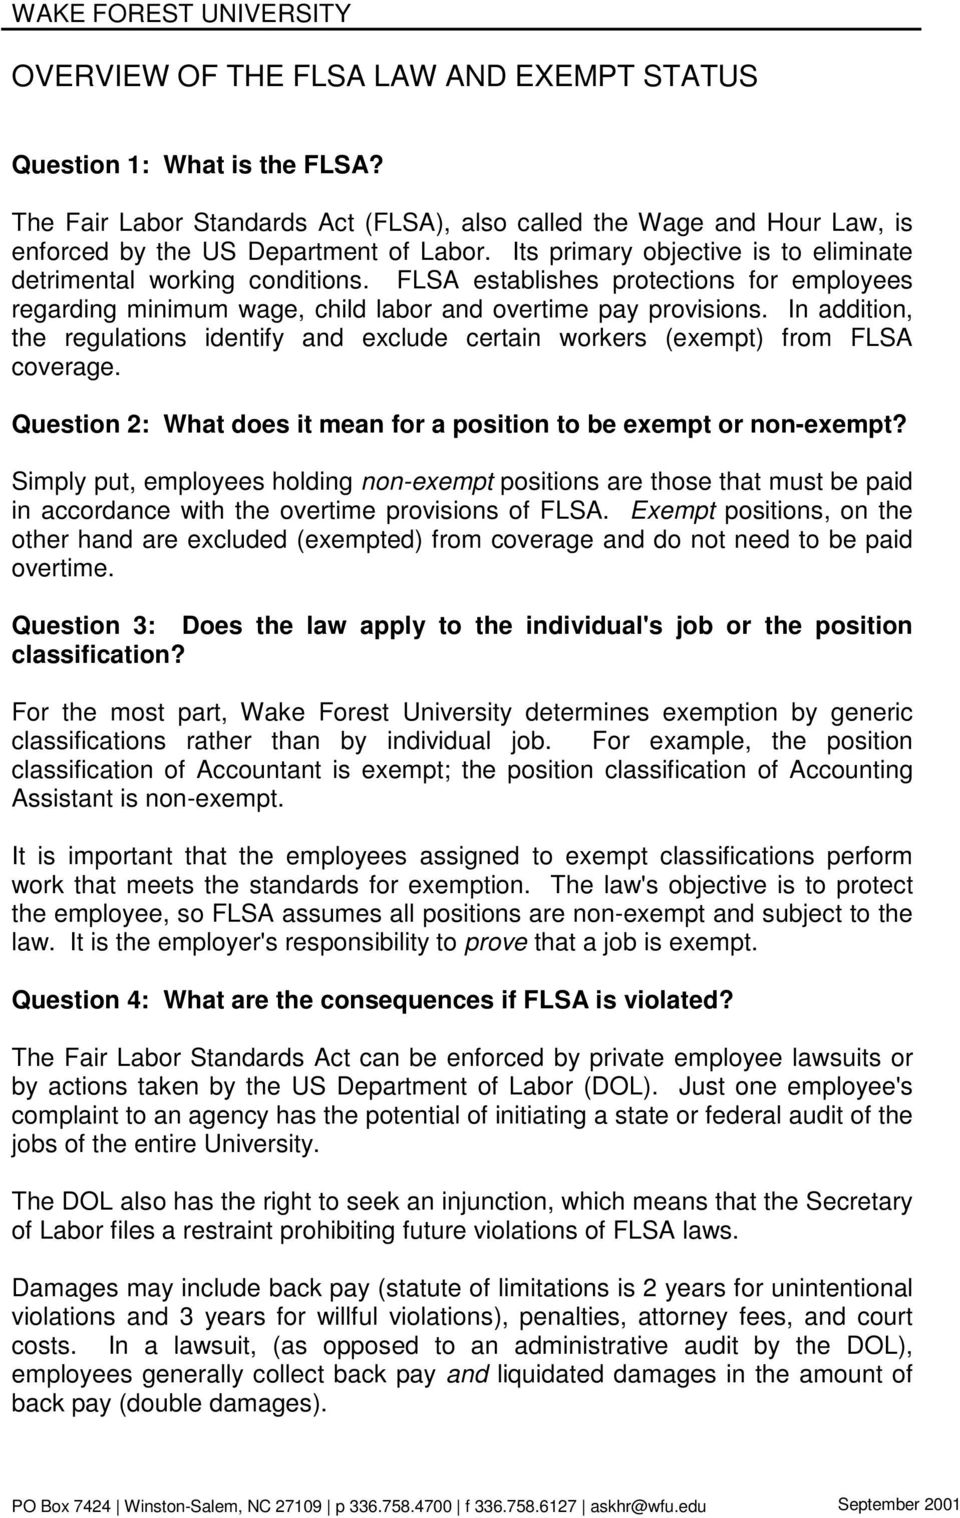 In addition, the regulations identify and exclude certain workers (exempt) from FLSA coverage. Question 2: What does it mean for a position to be exempt or non-exempt?